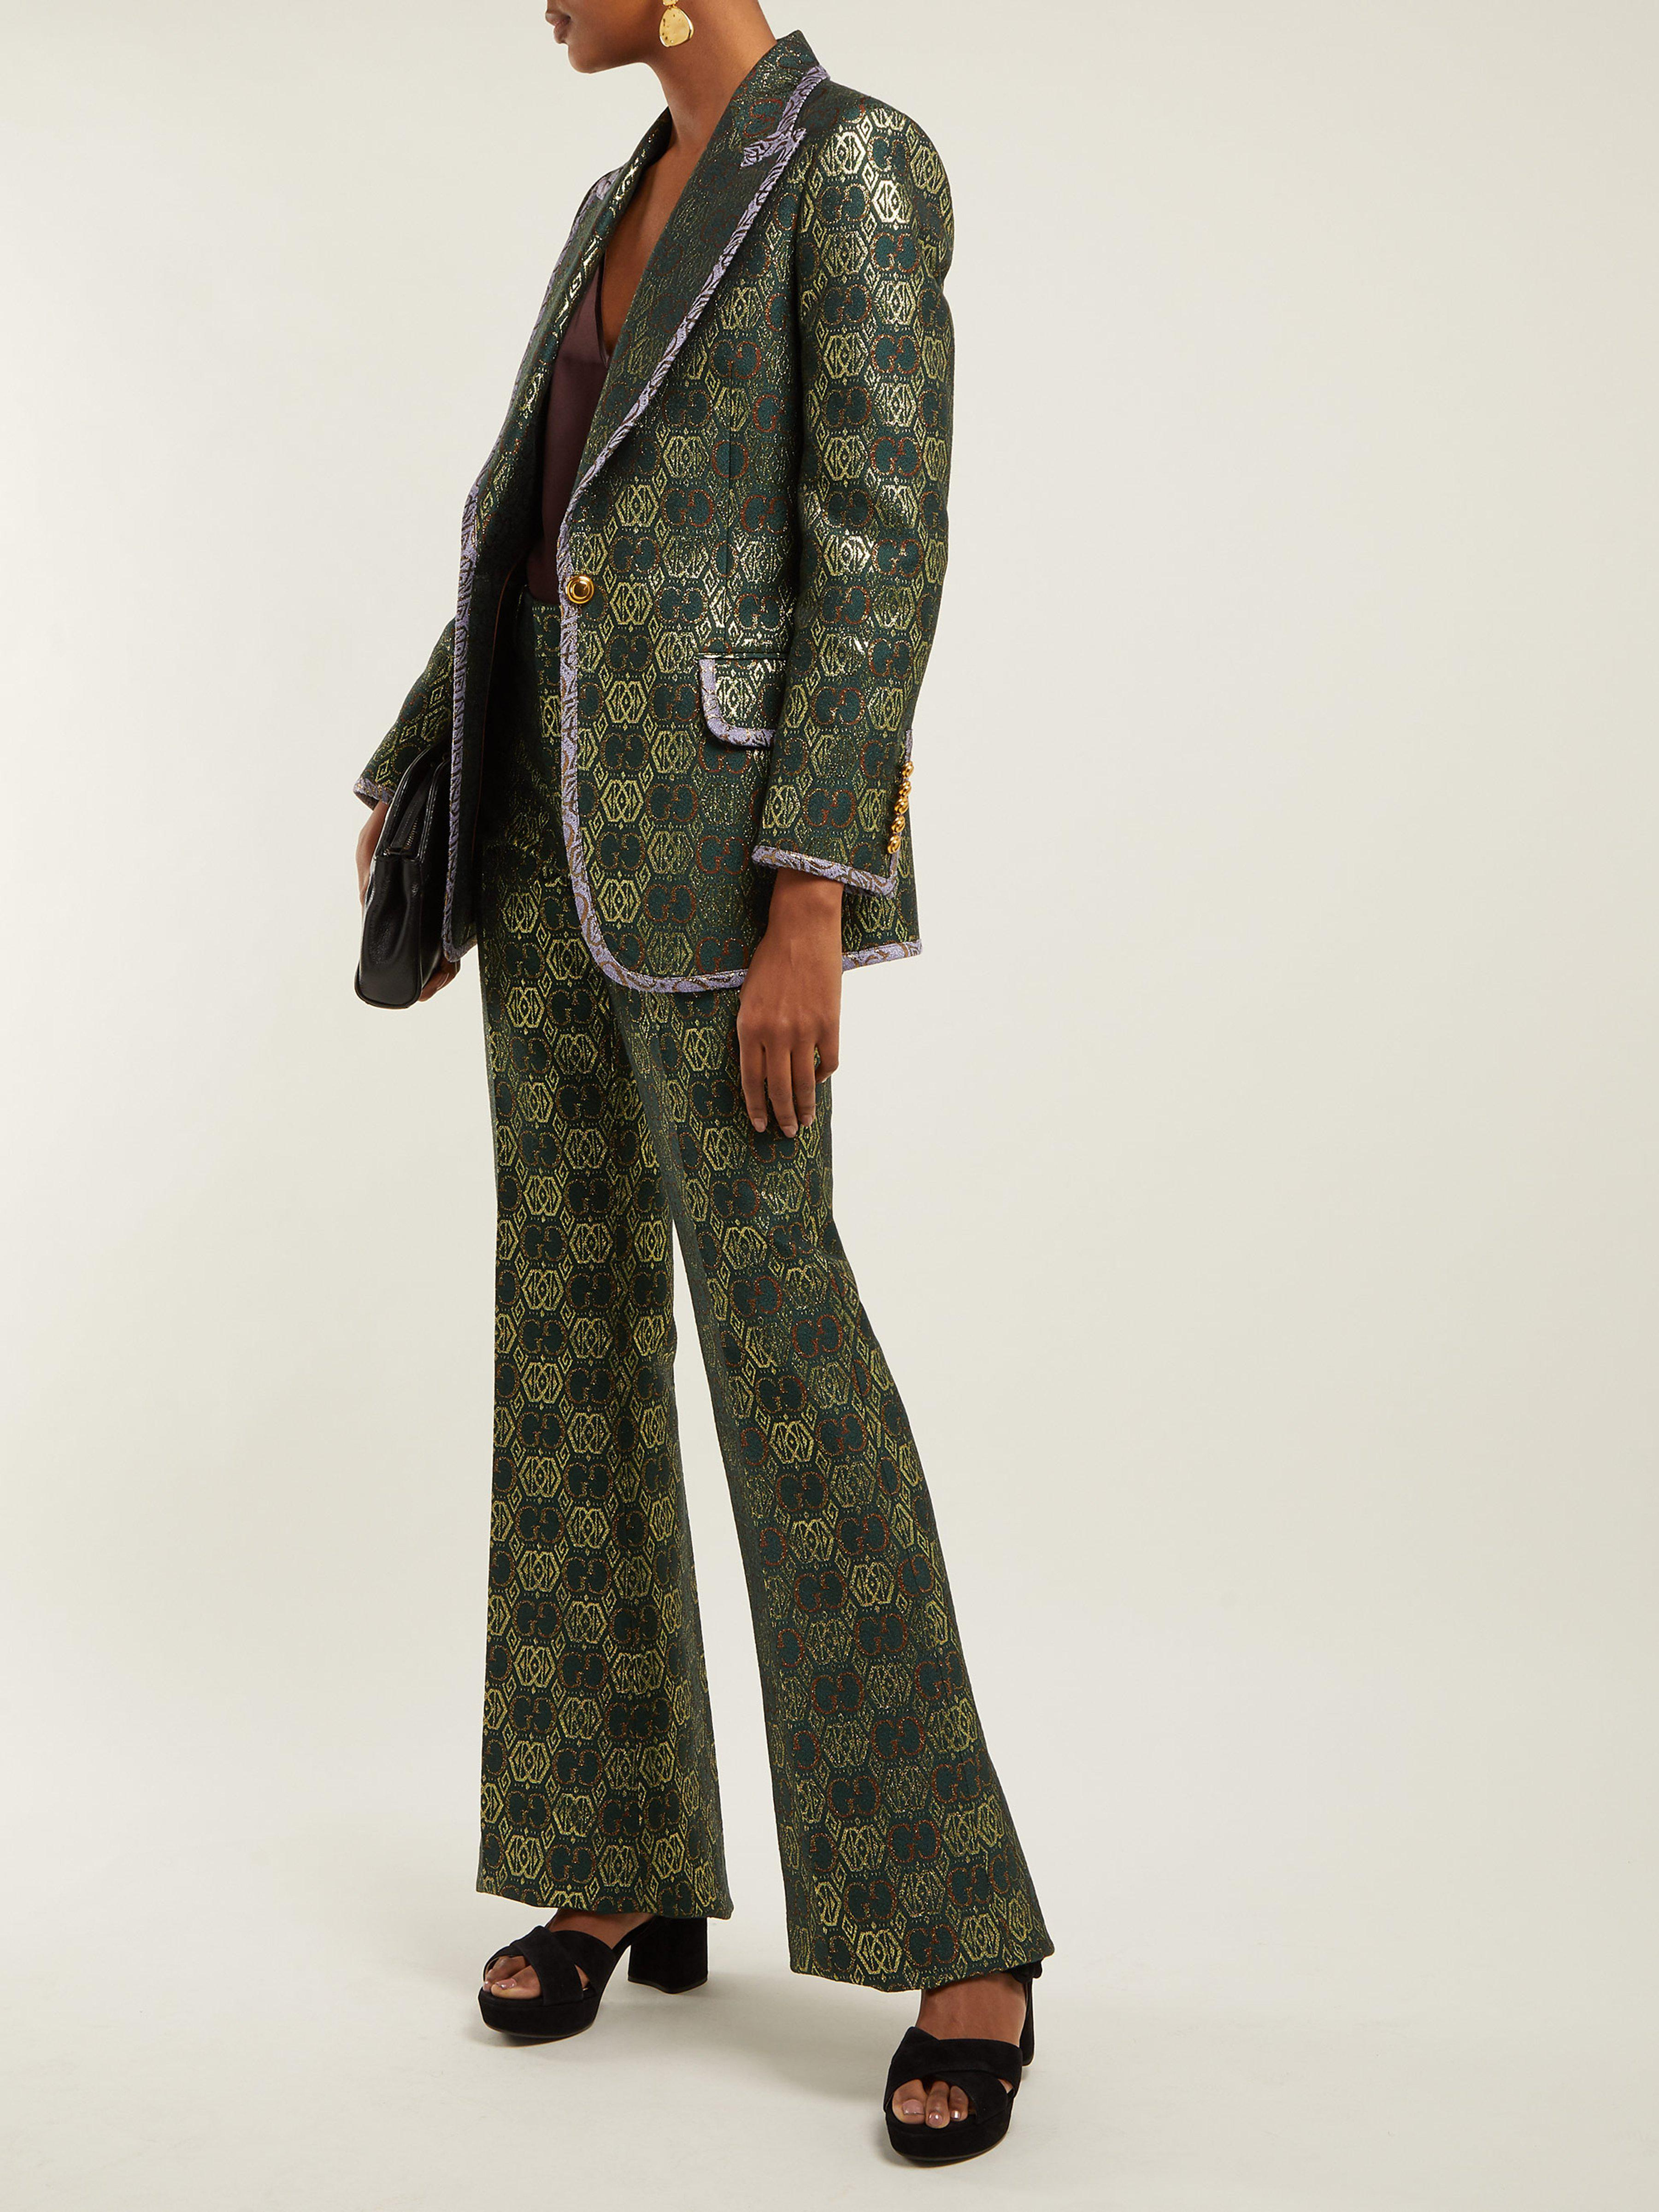 547638ad2 Gucci Gg Jacquard Flared Trousers in Green - Lyst